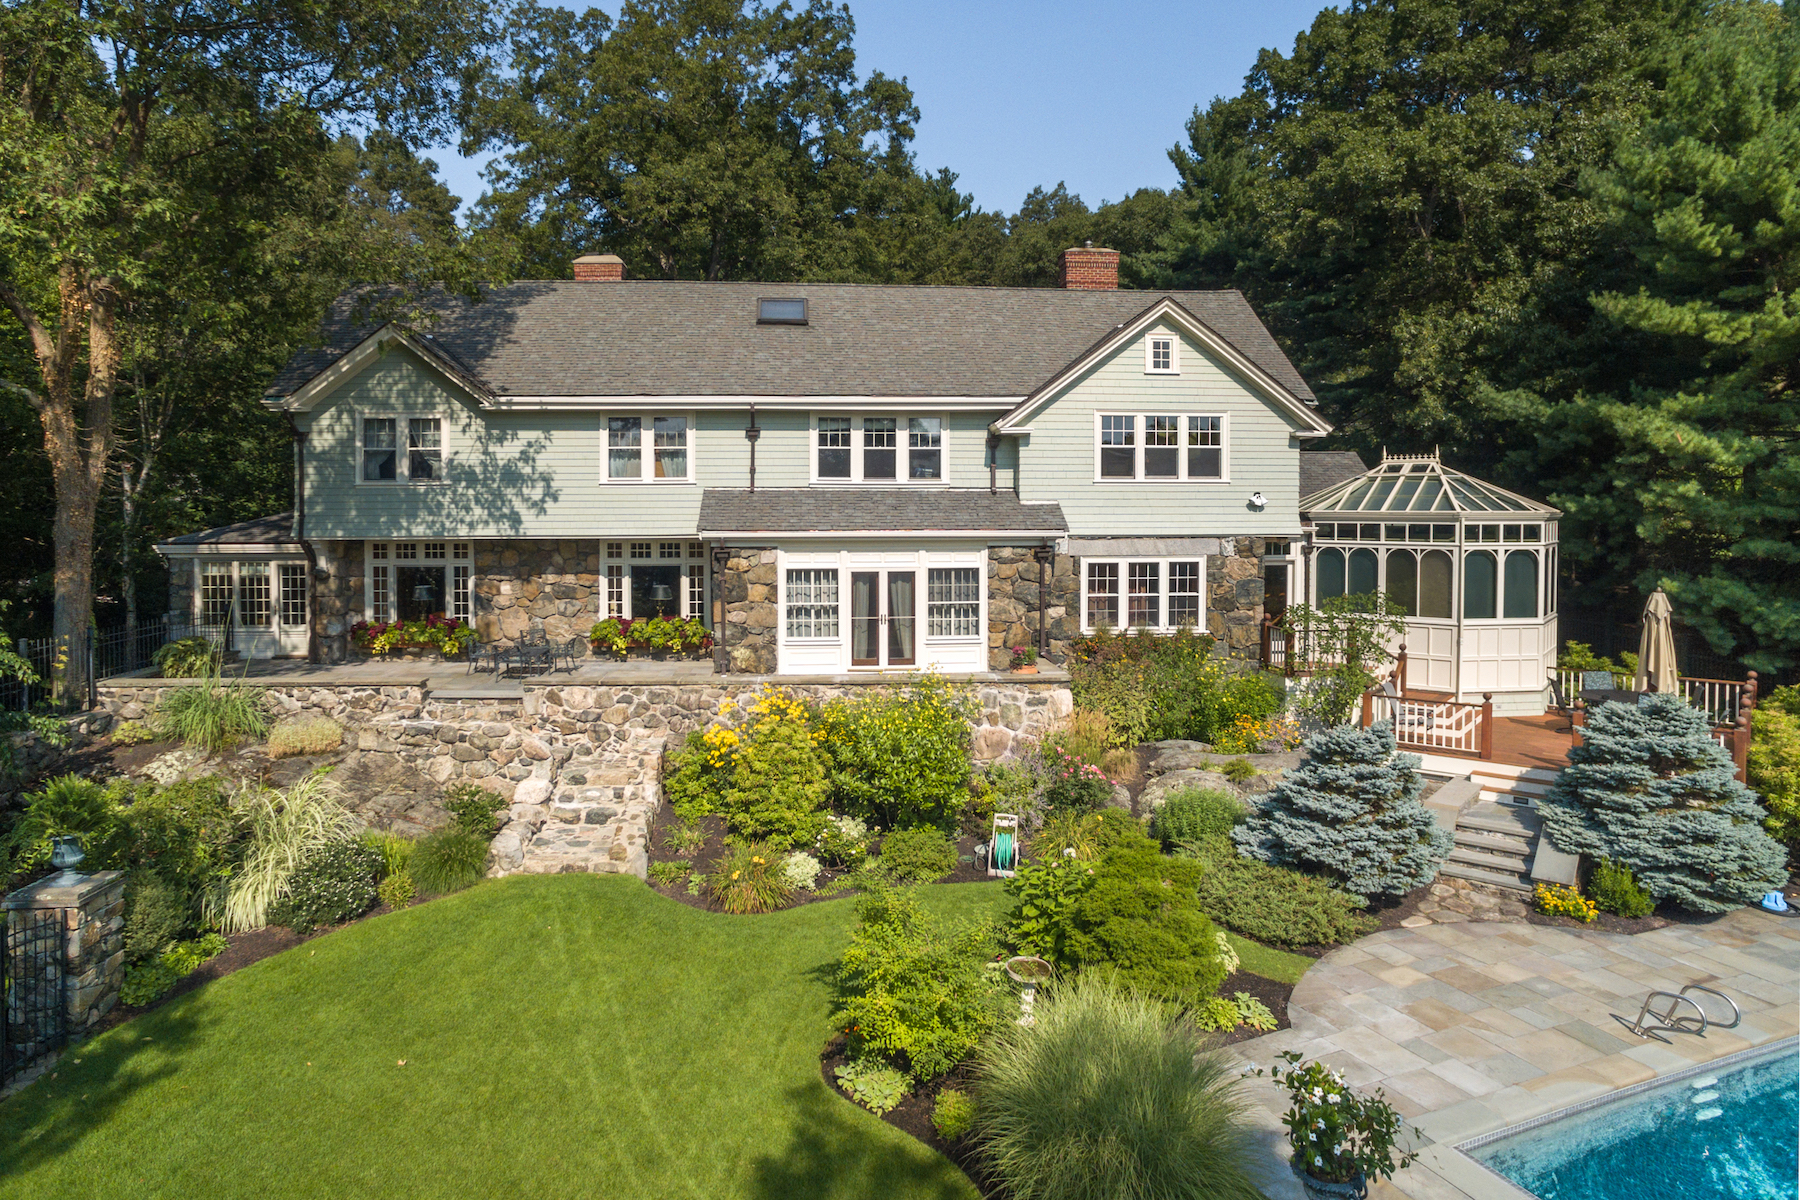 Additional photo for property listing at Exceptional Historic Arts & Crafts Home with Carriage House 16 McCall Rd Winchester, Massachusetts 01890 United States